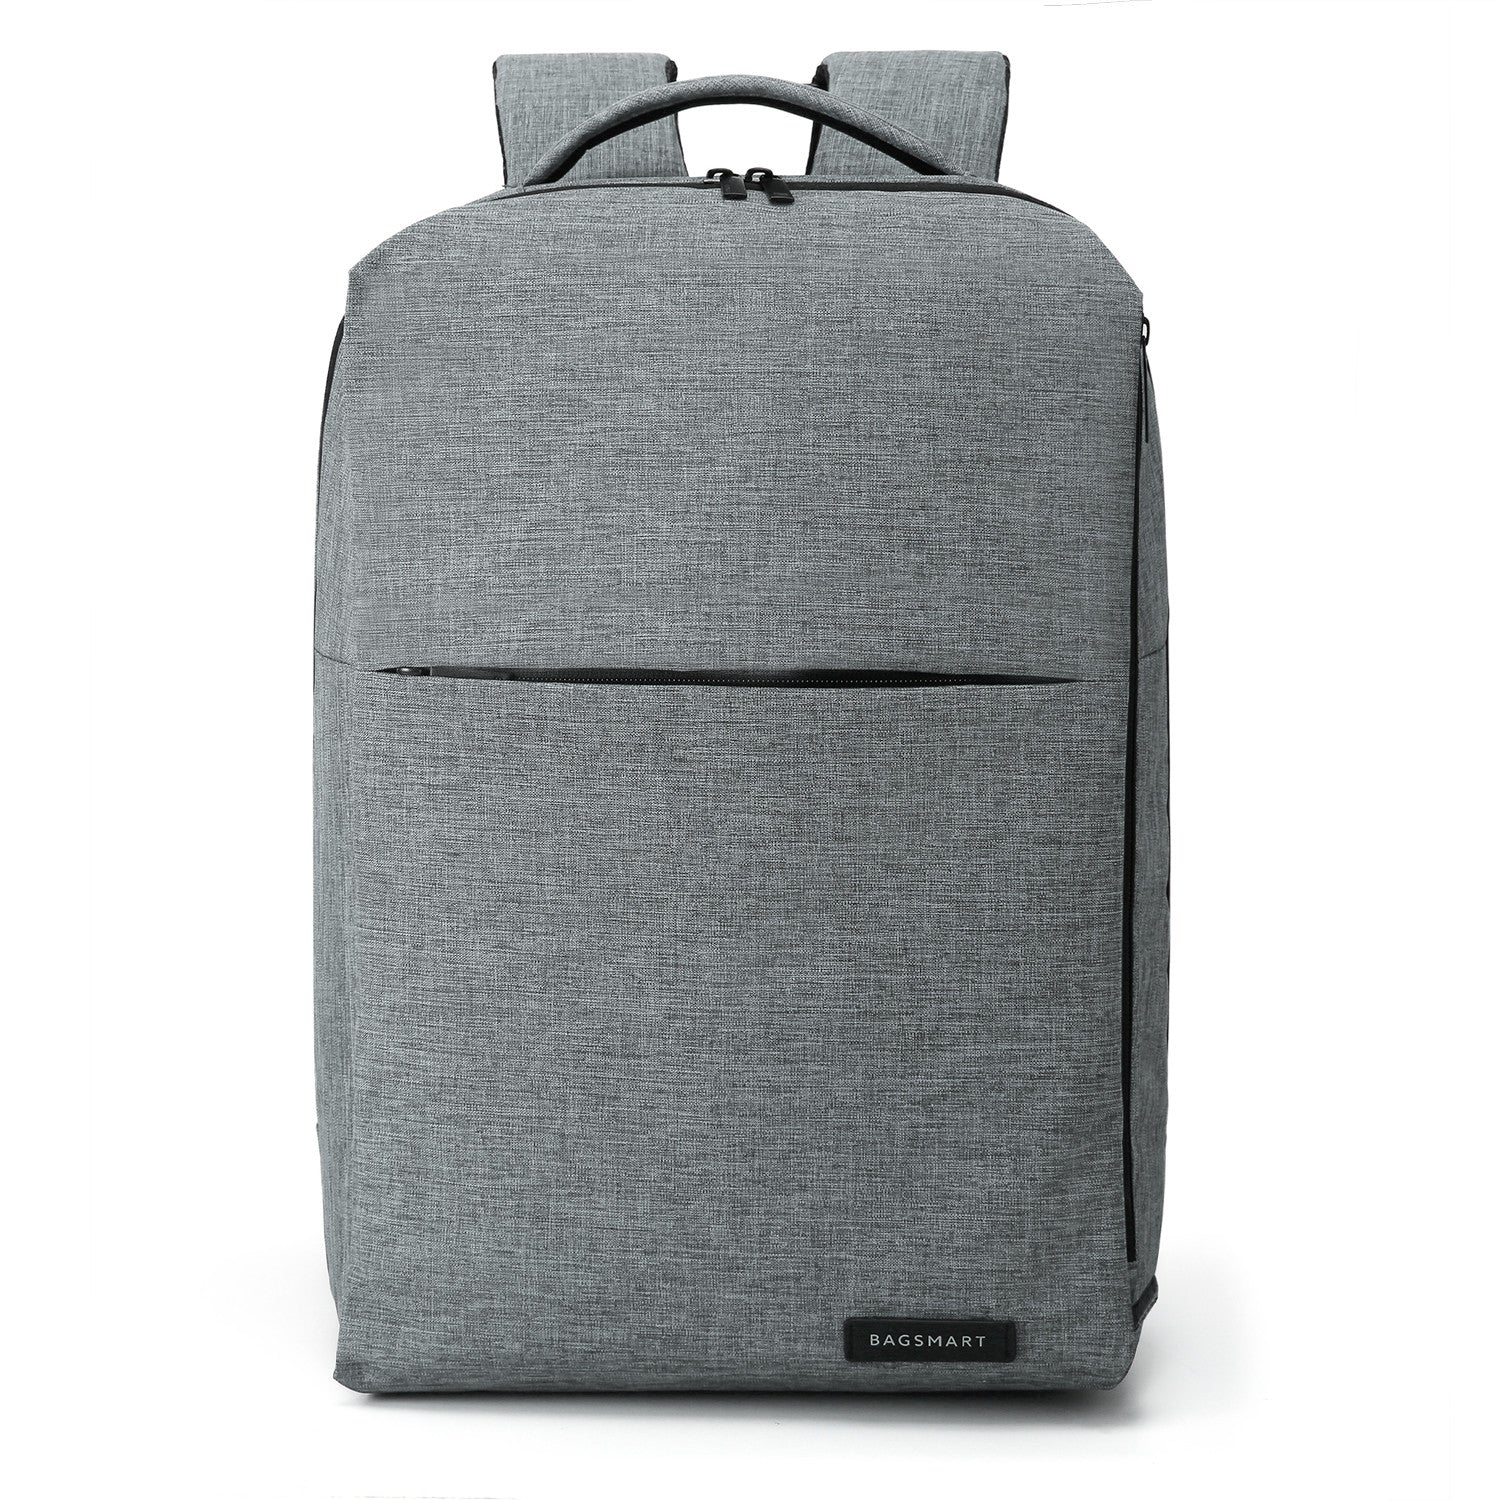 Water Resistant Laptop Backpack with Headphone Port - wearevel